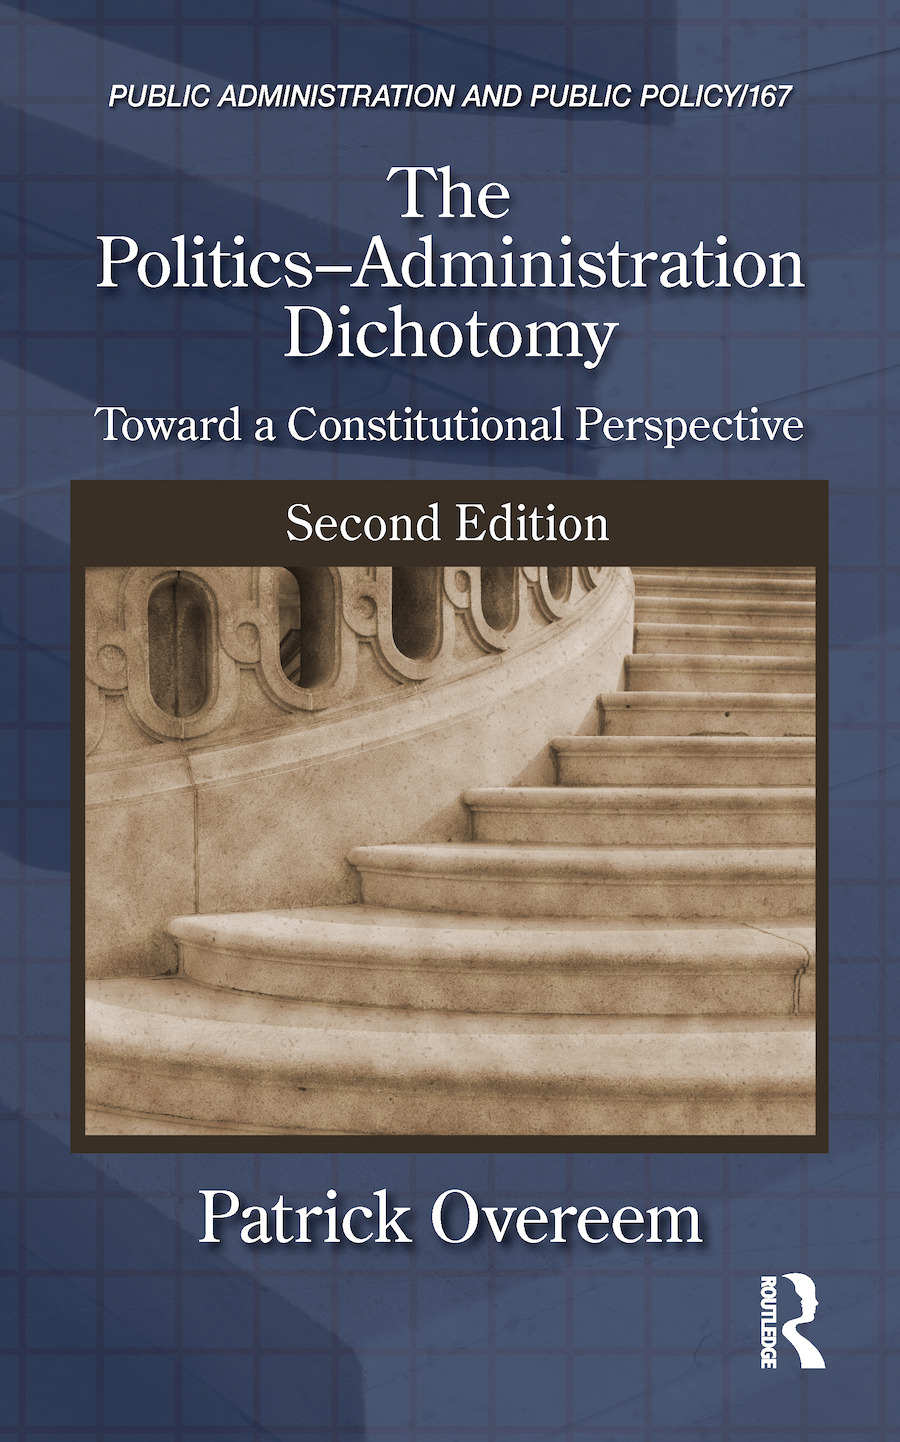 The Politics-Administration Dichotomy: Toward a Constitutional Perspective, Second Edition book cover